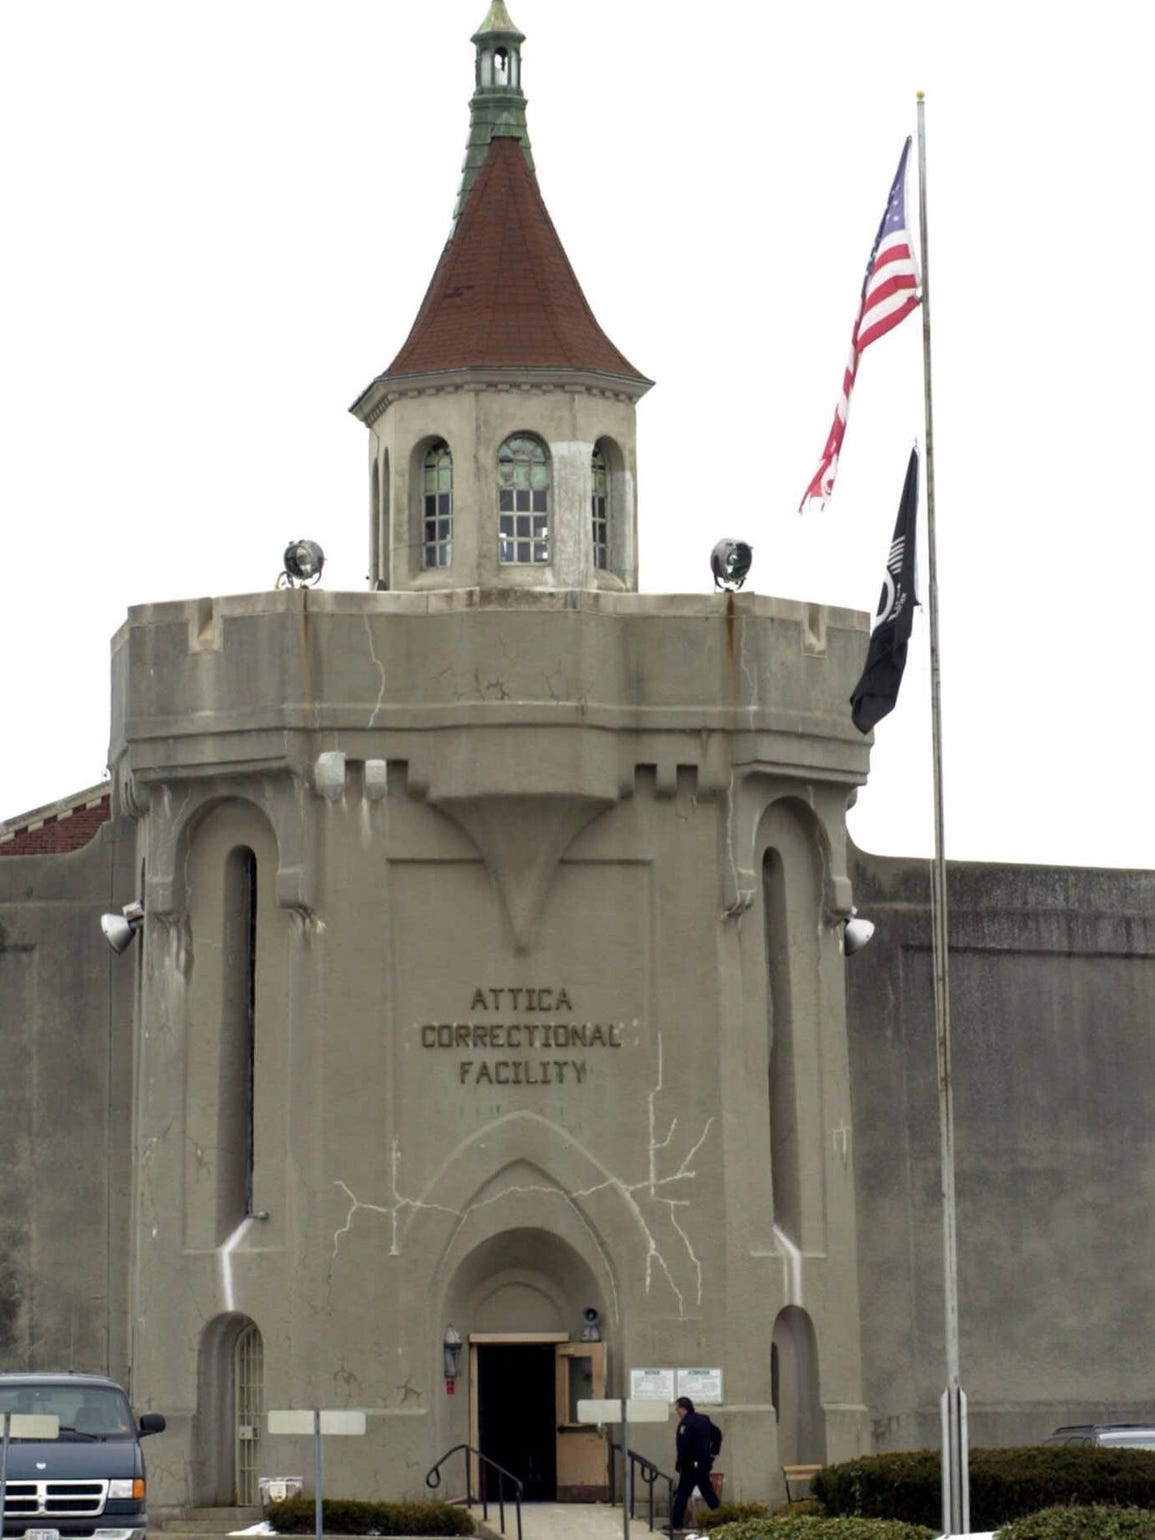 The main entrance to the Attica Correctional Facility